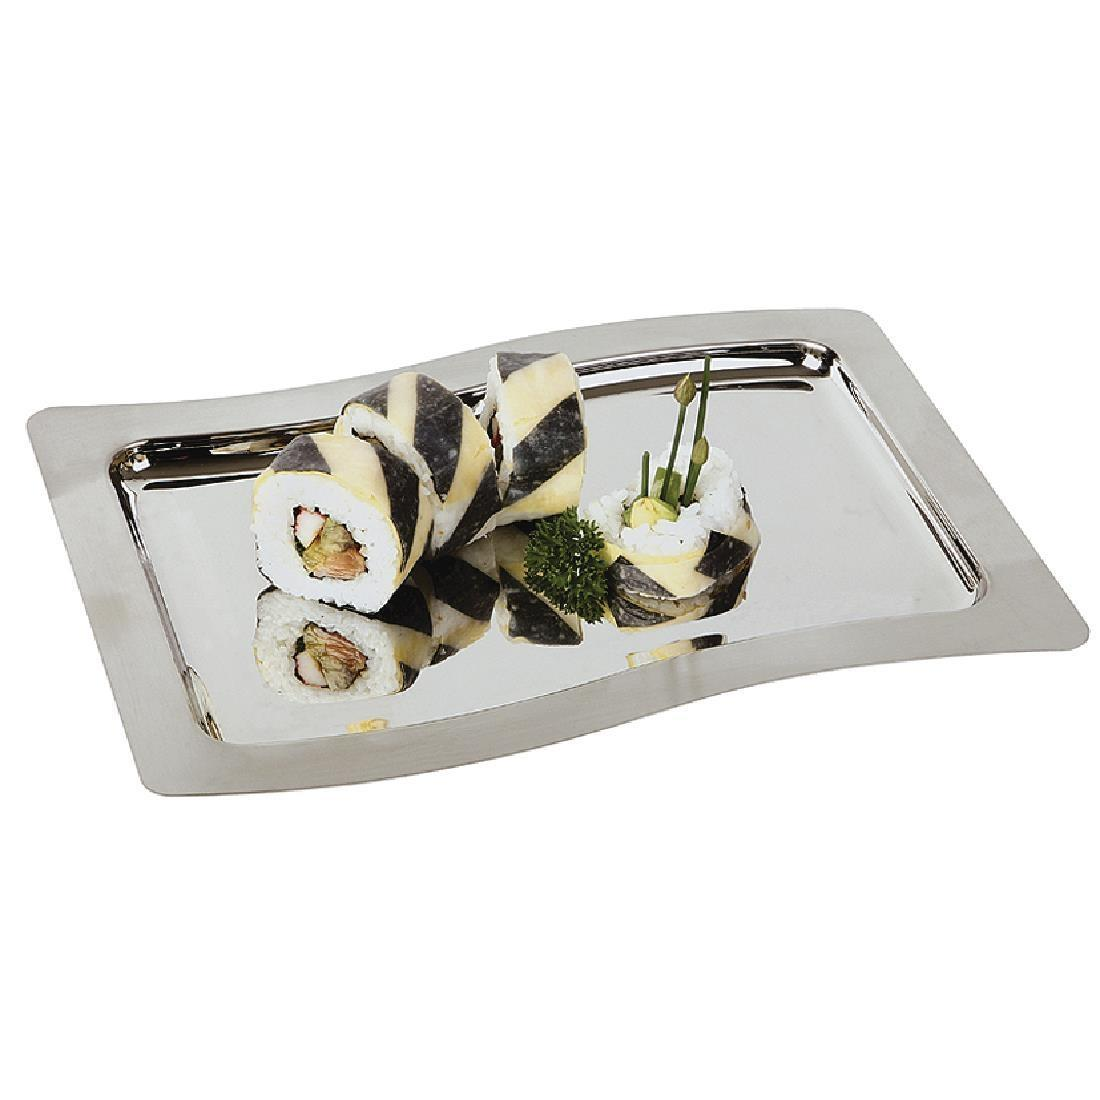 APS Stainless Steel Service Display Tray 285mm - Each - S499